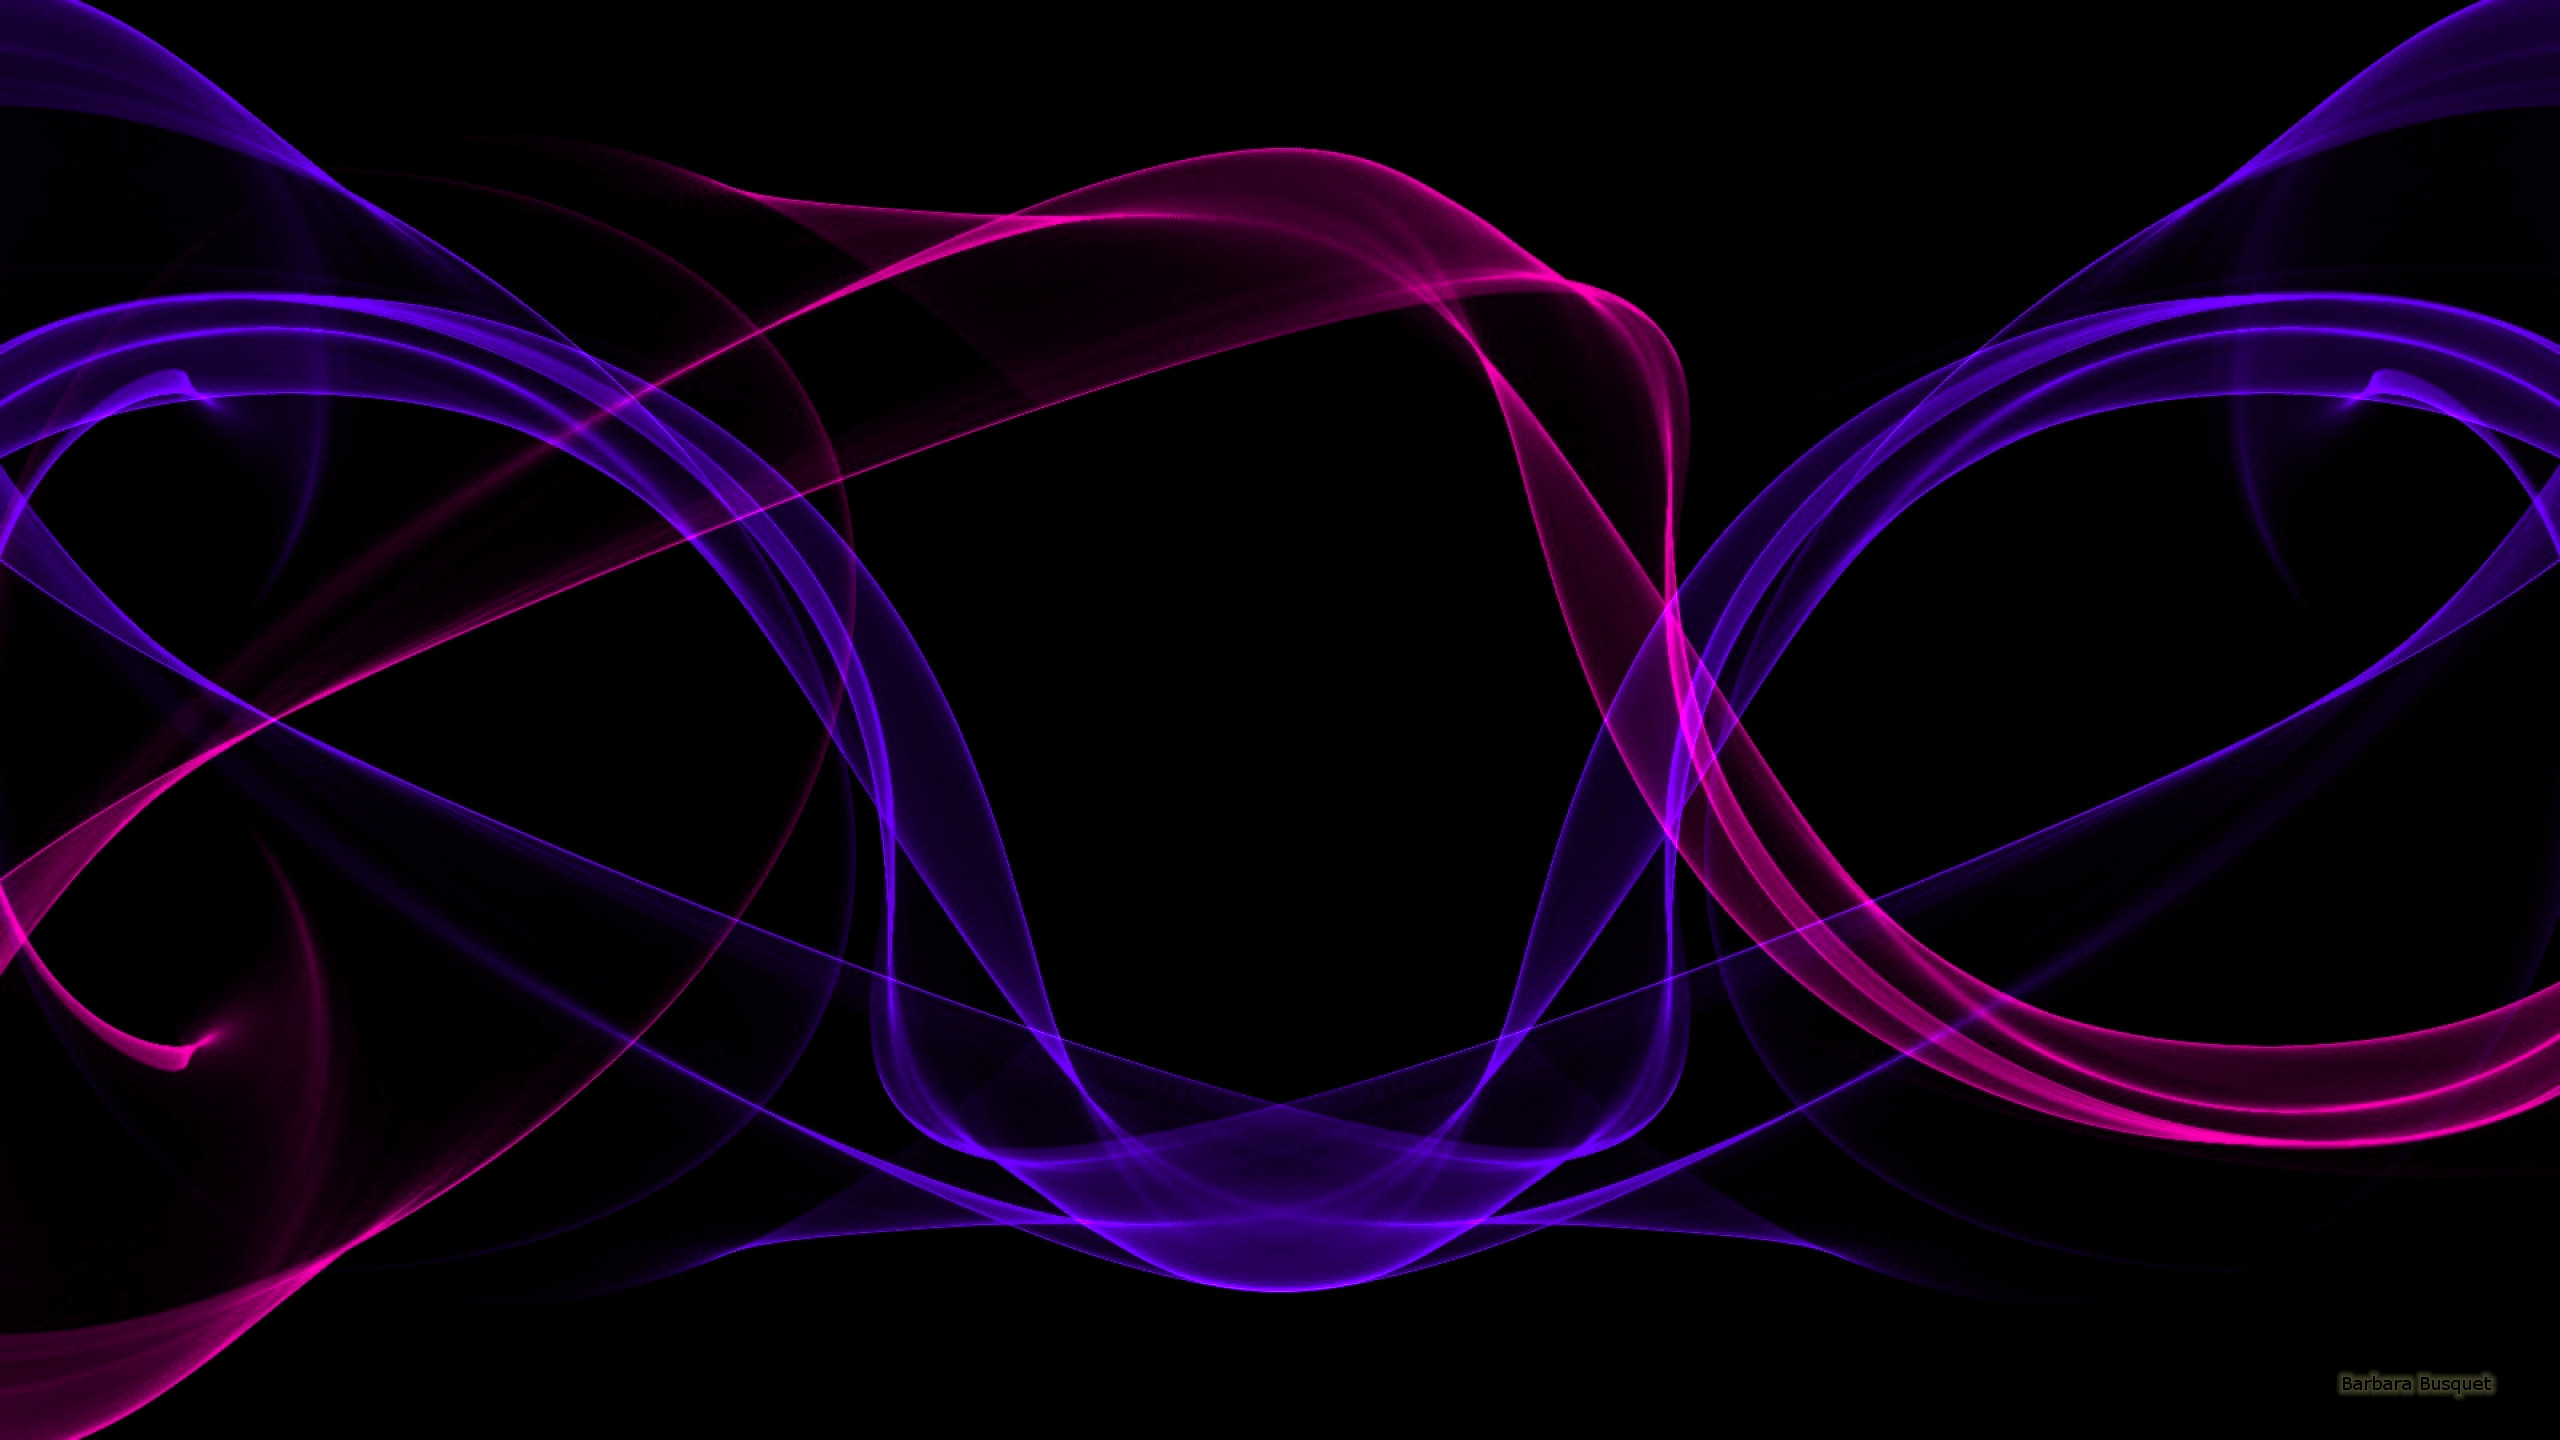 2560x1440 Black abstract wallpaper with purple and pink waves